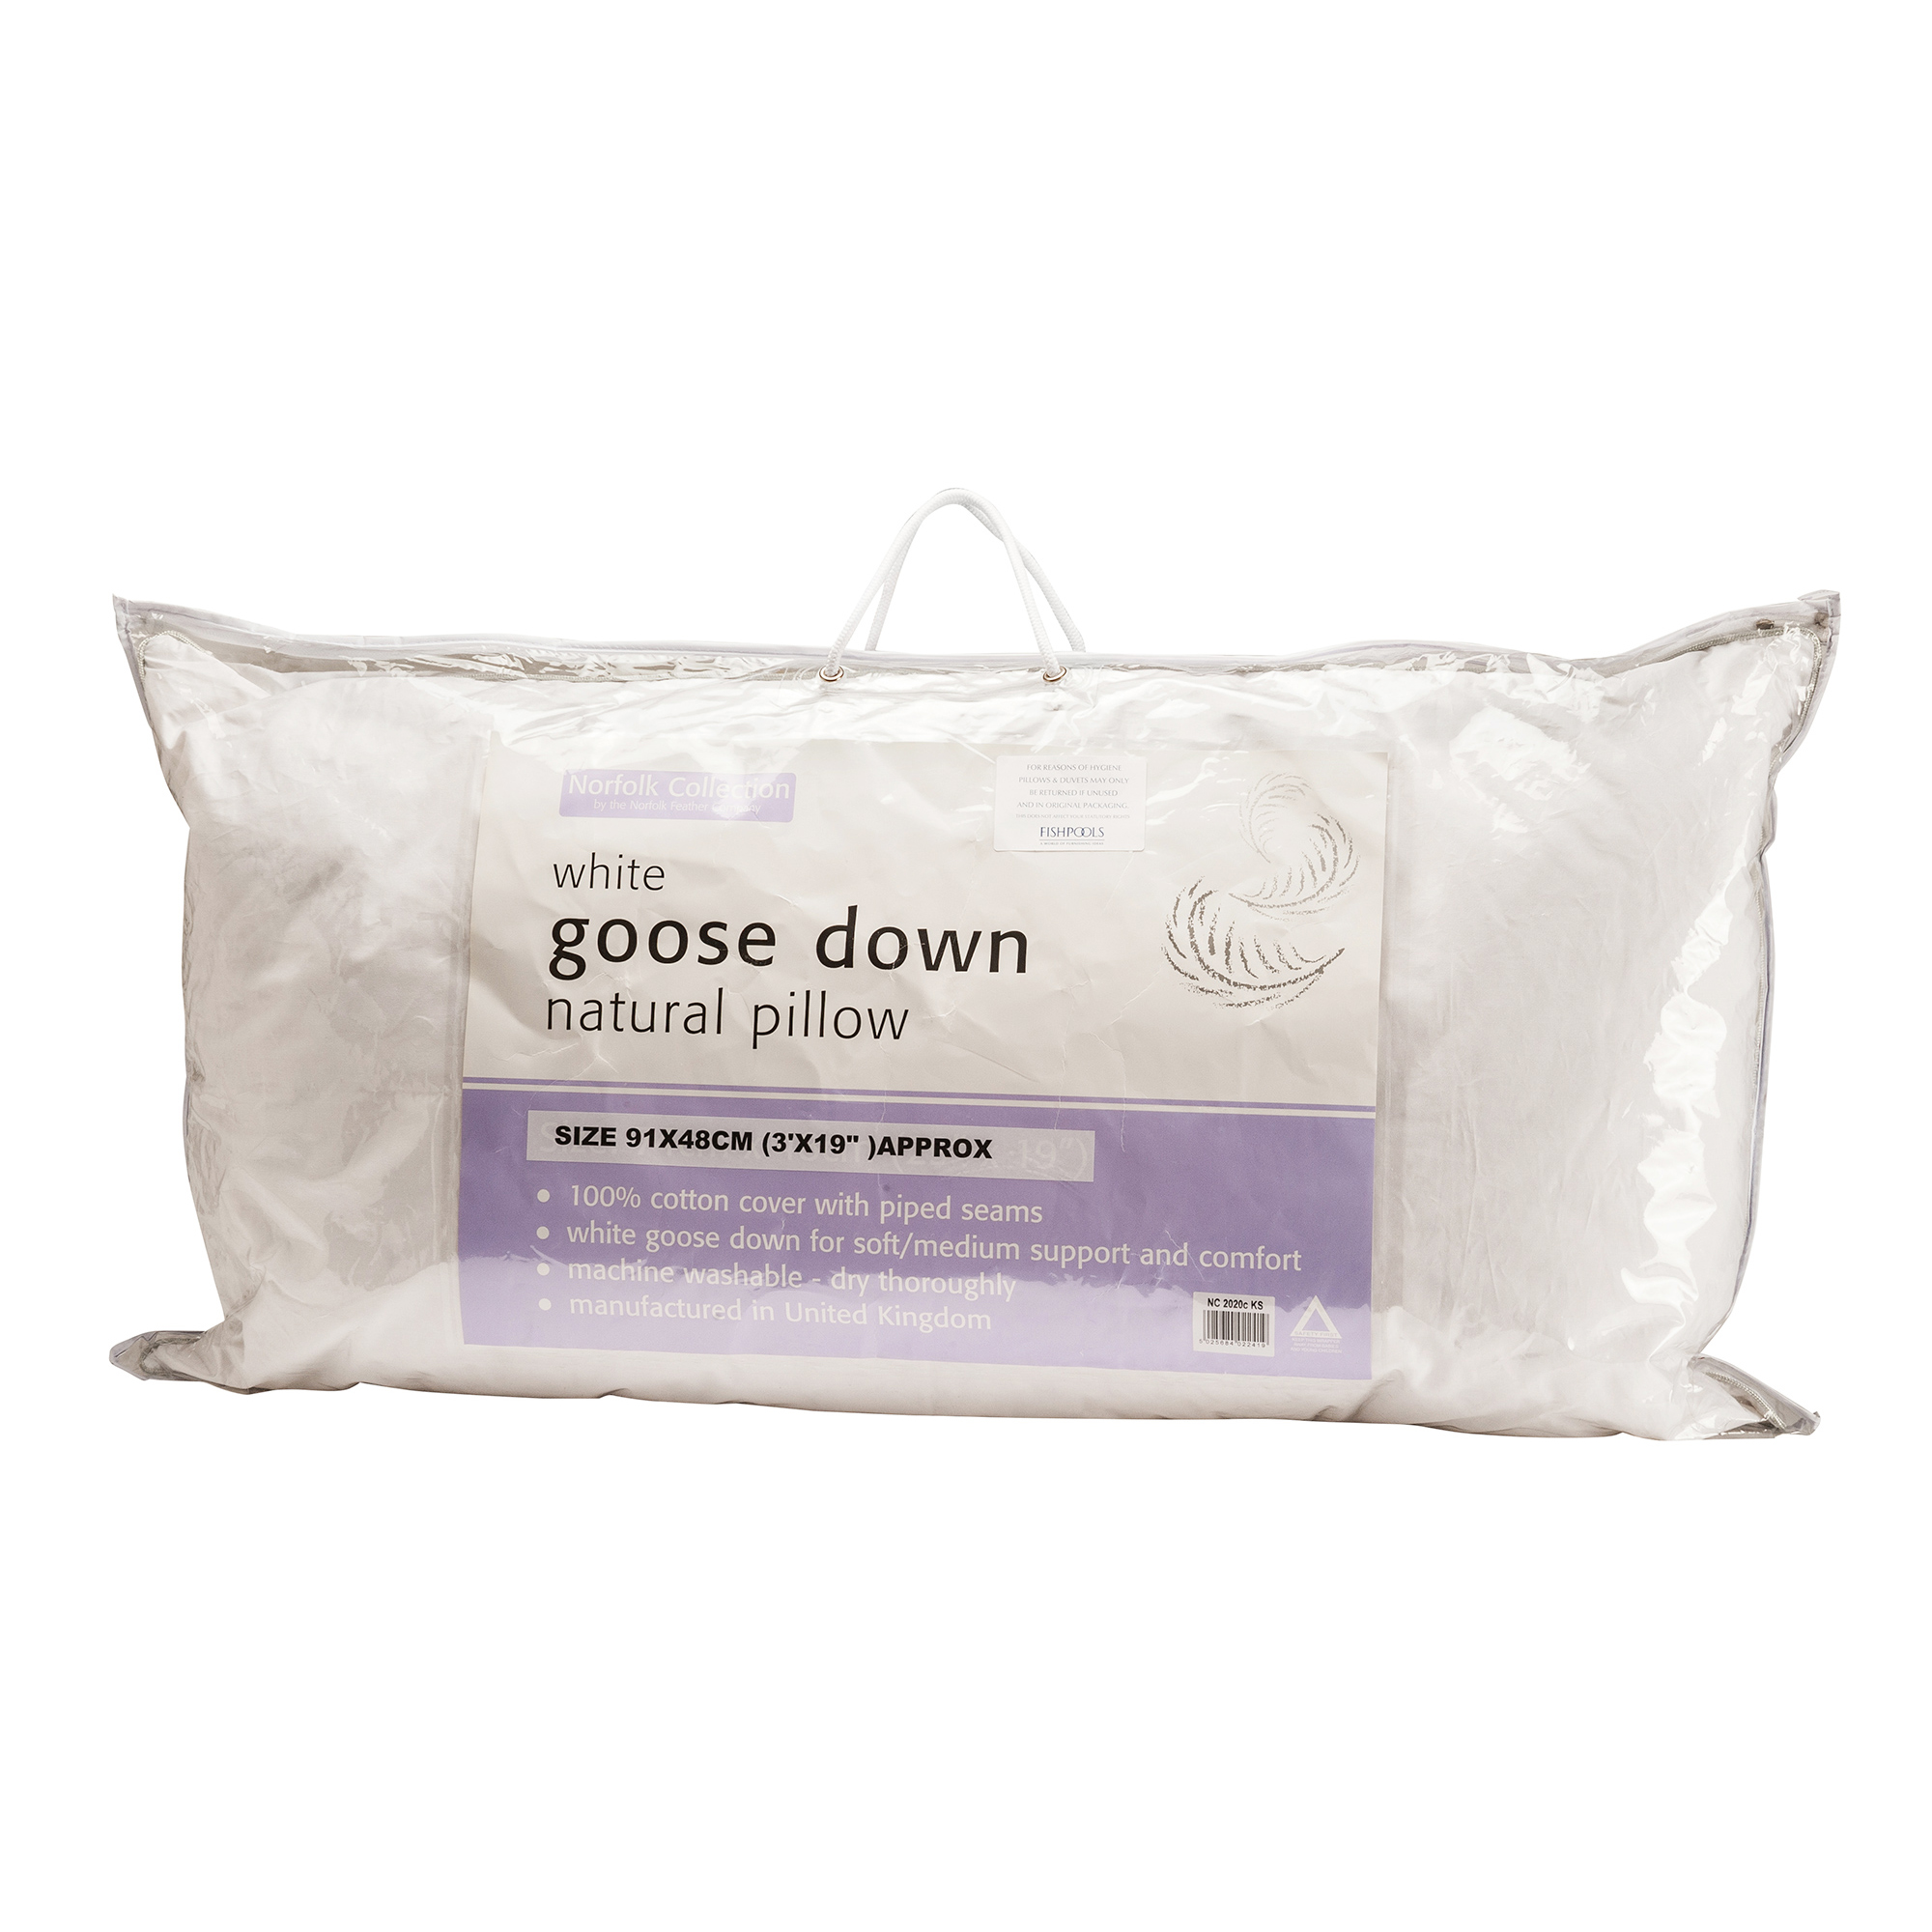 Goose Down Throw Pillows : European Goose Down Pillow King - Pillows - Fishpools